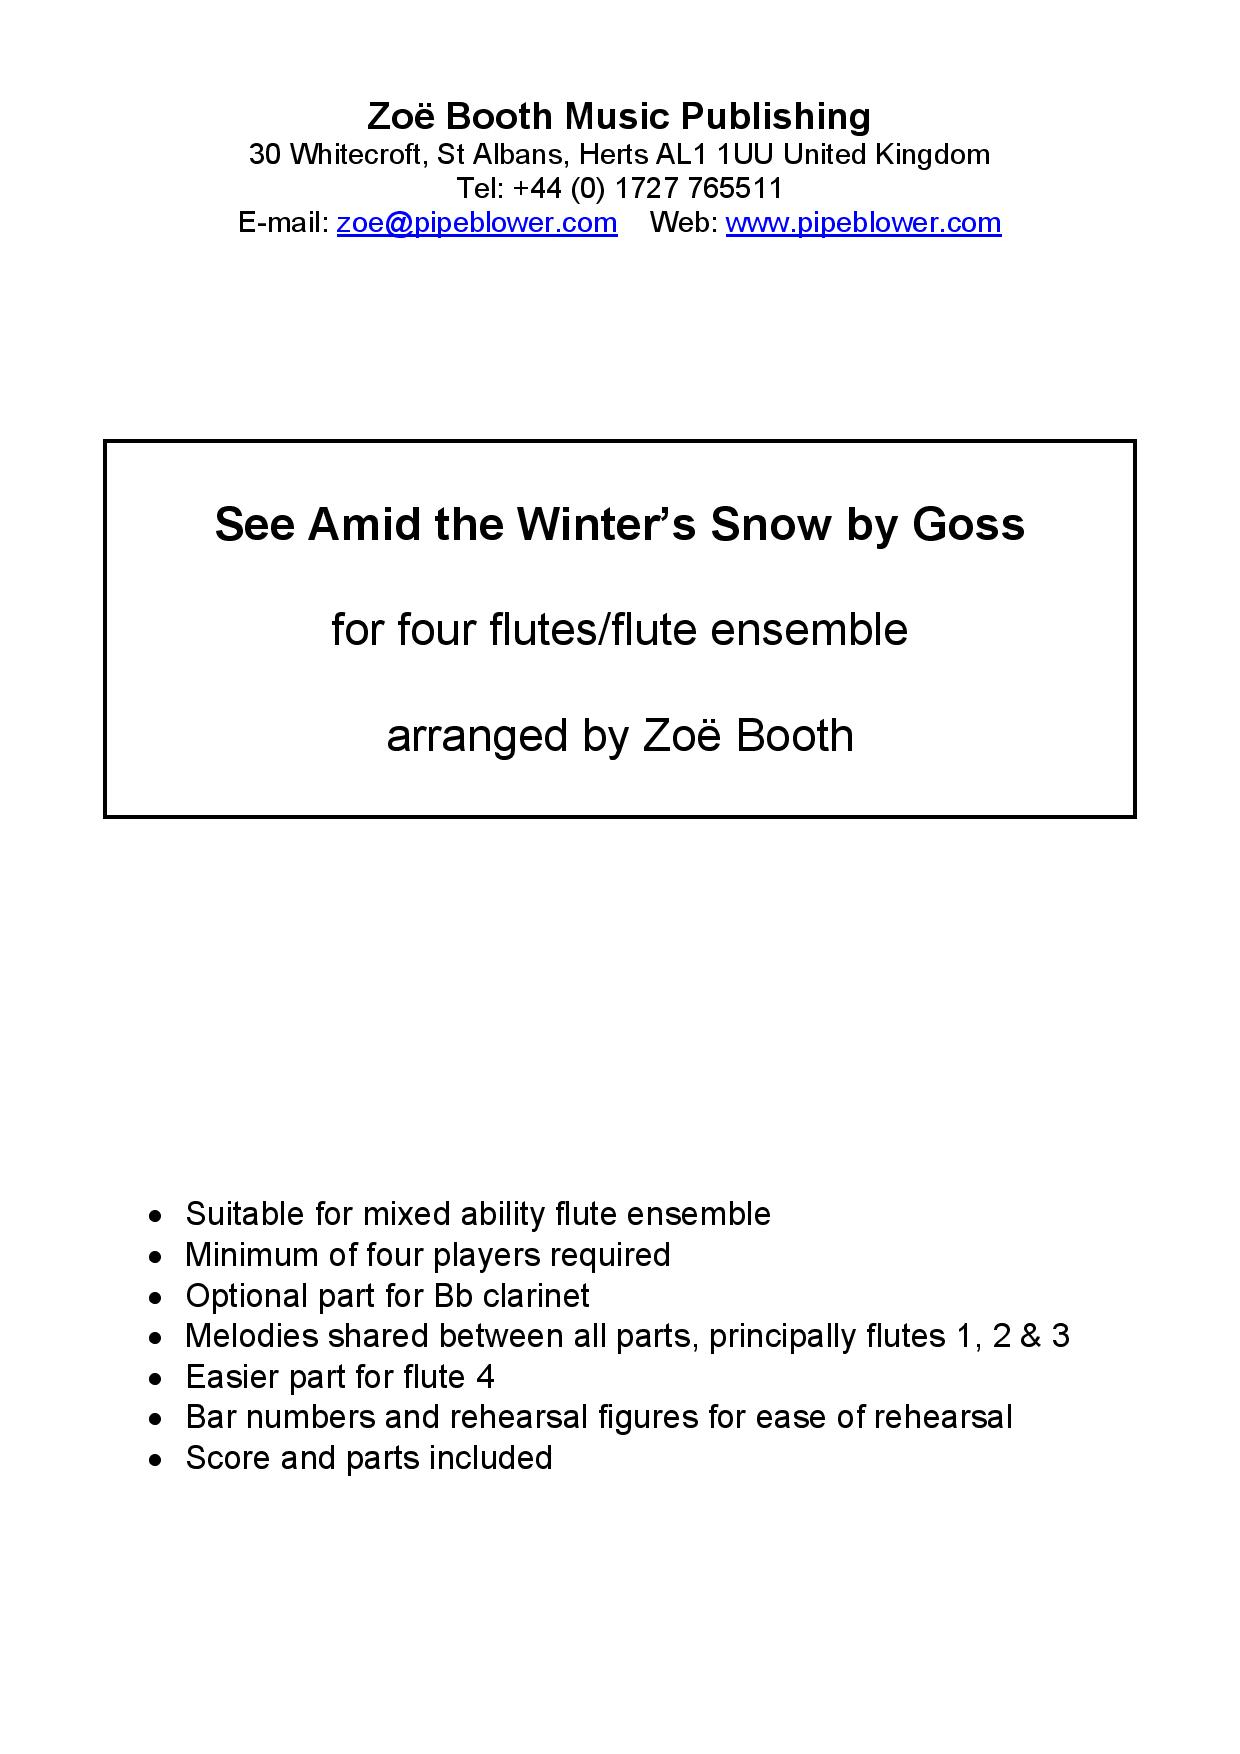 See Amid the Winter's Snow by John Goss,  arranged by Zoë Booth for four or more flutes/flute choir